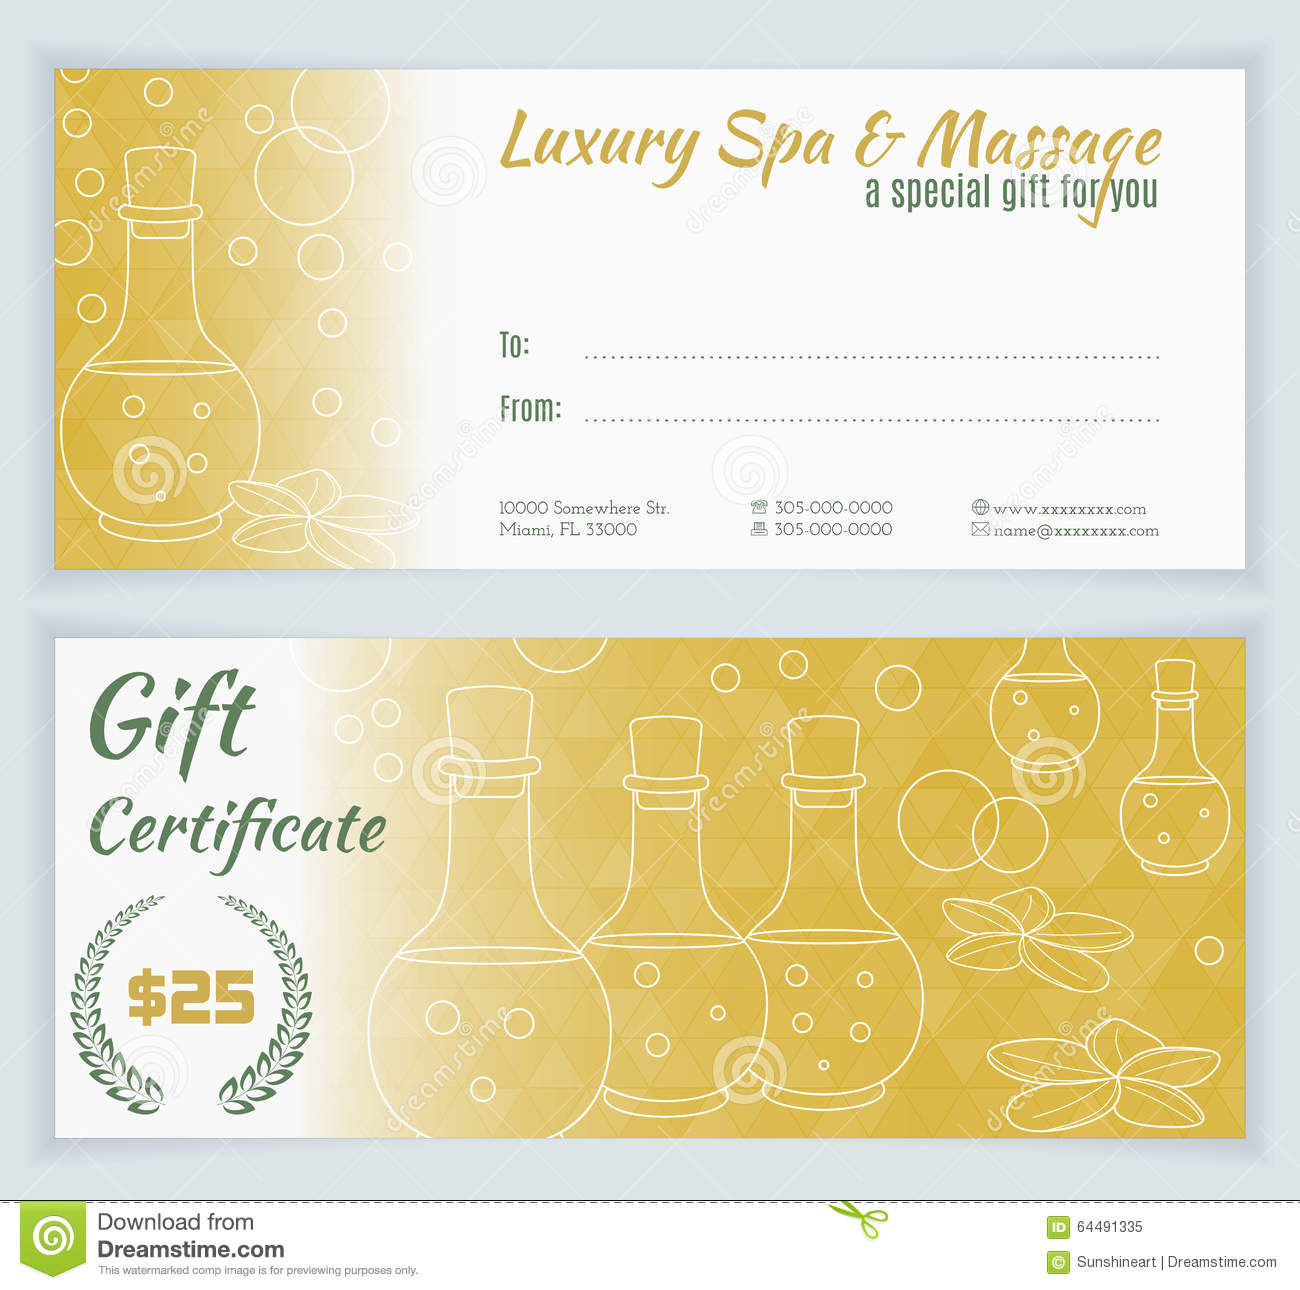 Spa Massage Gift Certificate Template Stock Illustration intended for Massage Gift Certificate Template Free Download